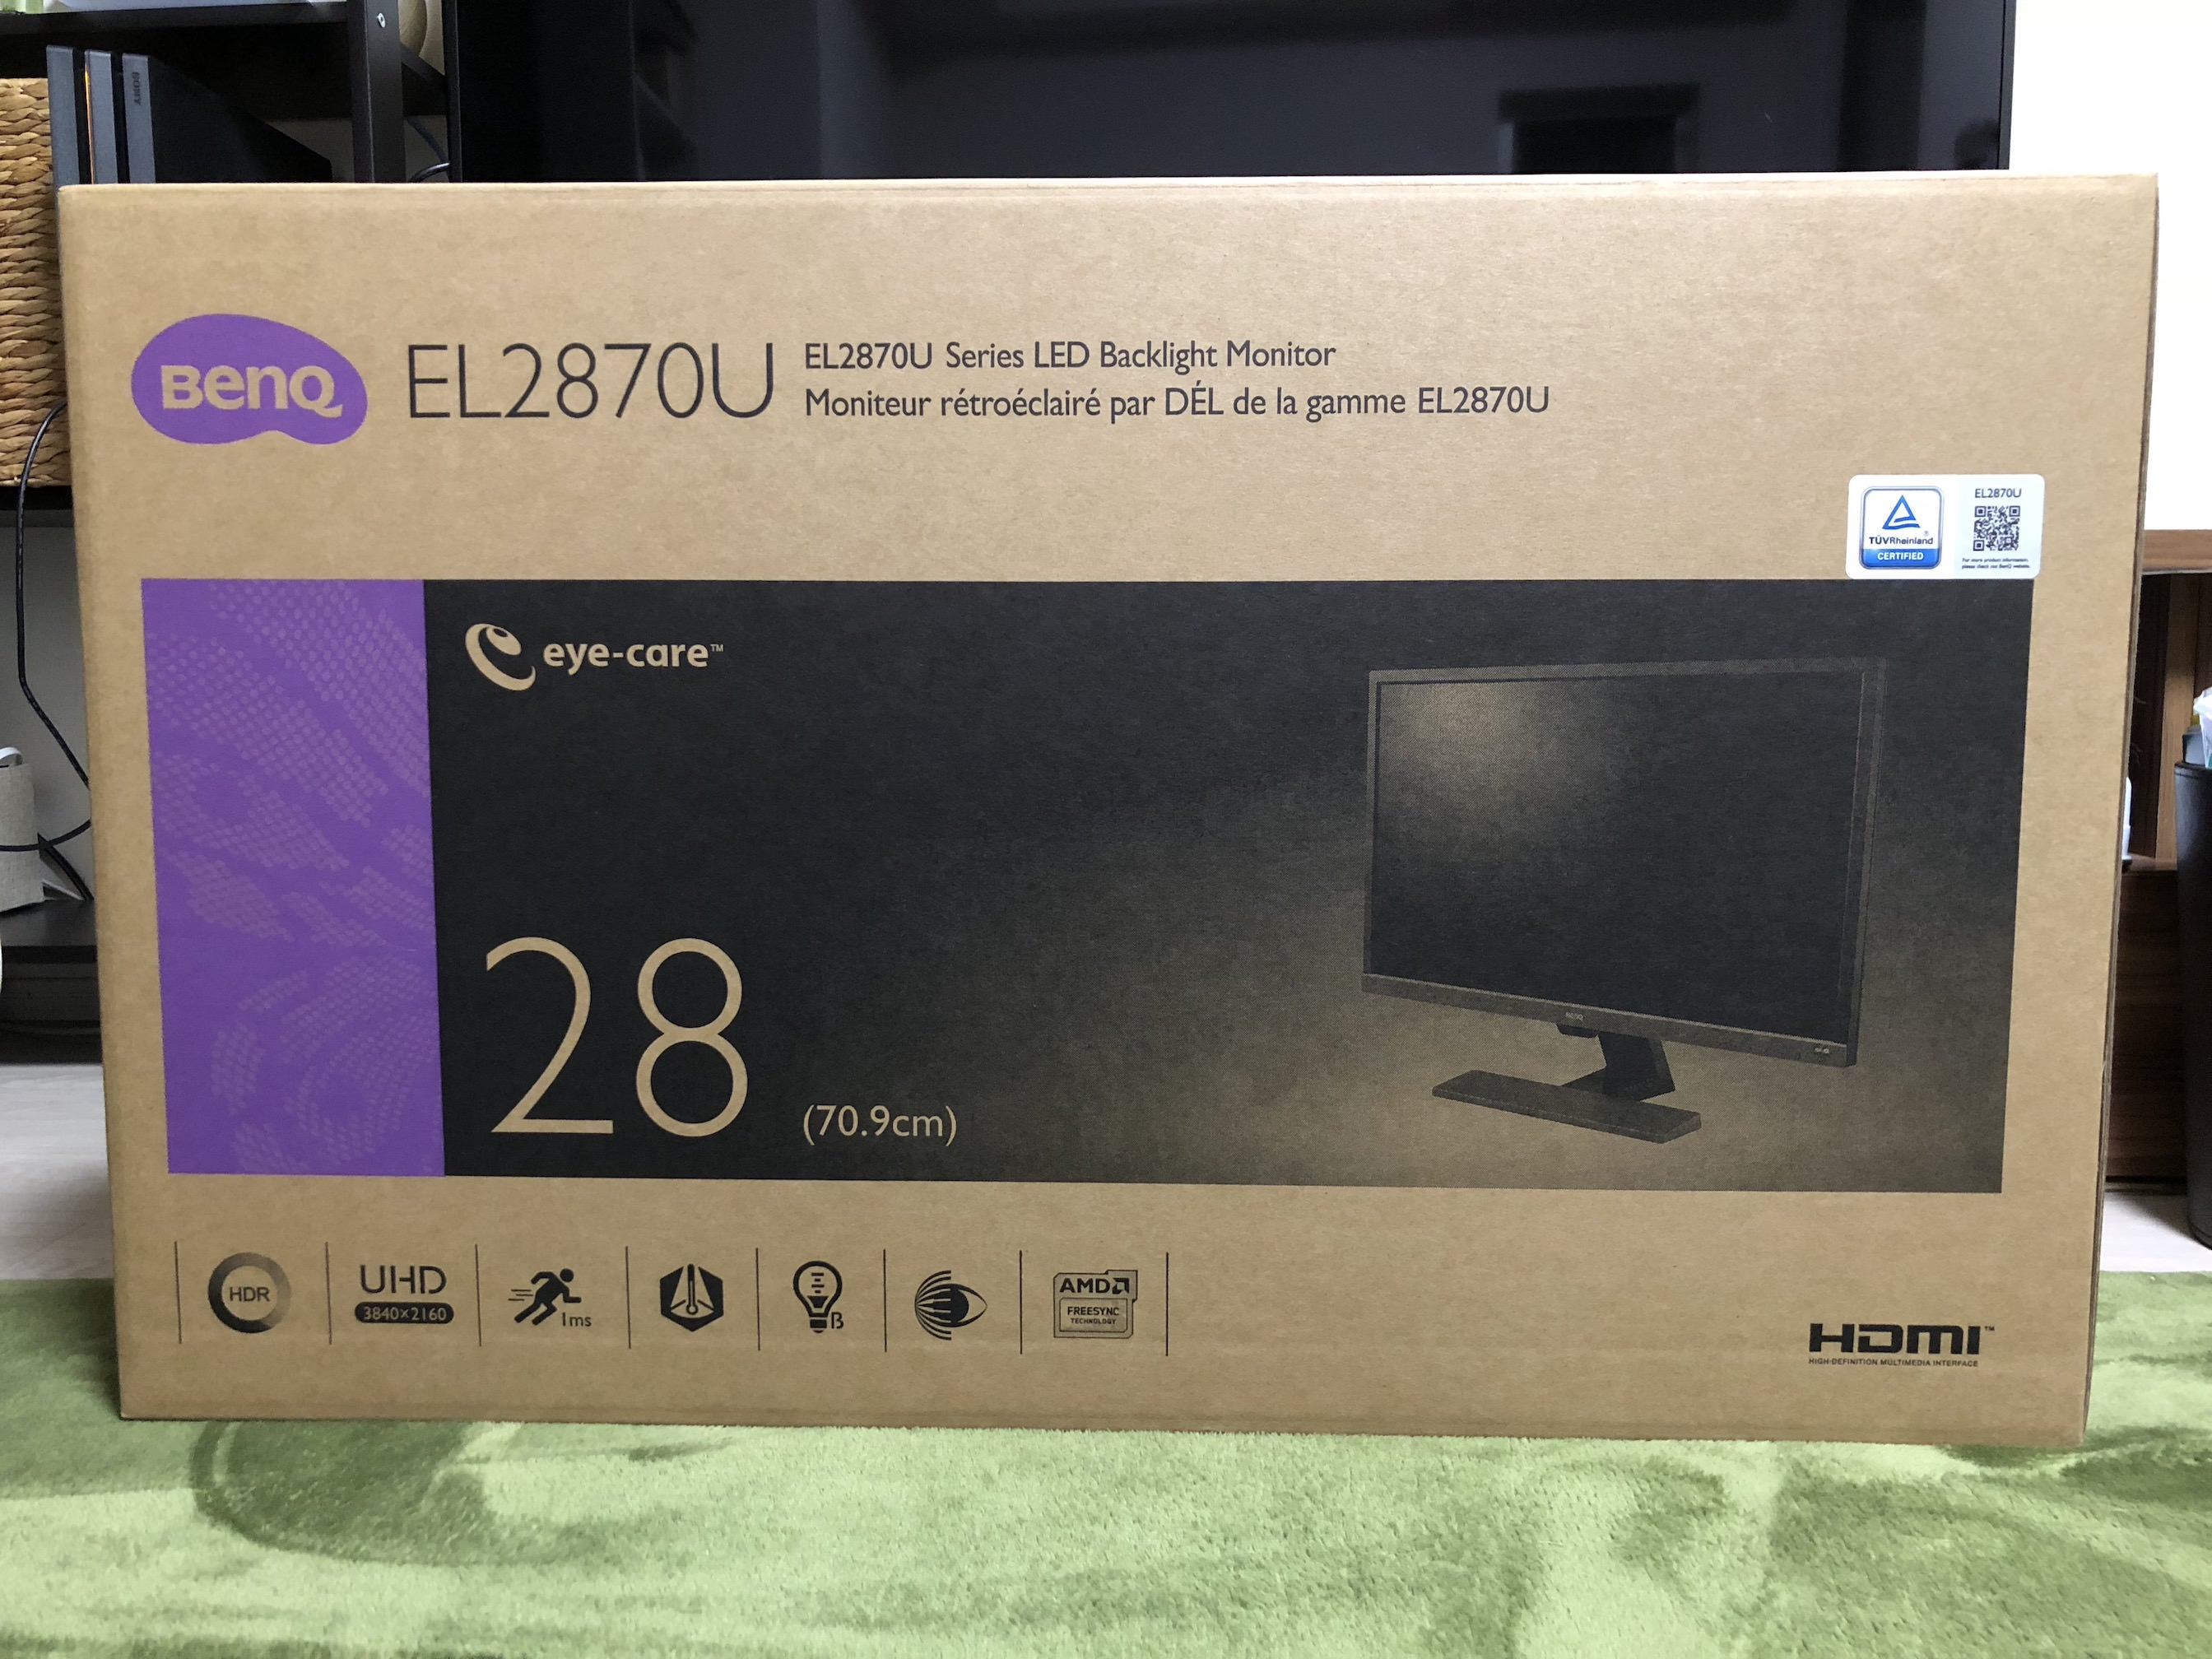 Benq el2870u first impression 2